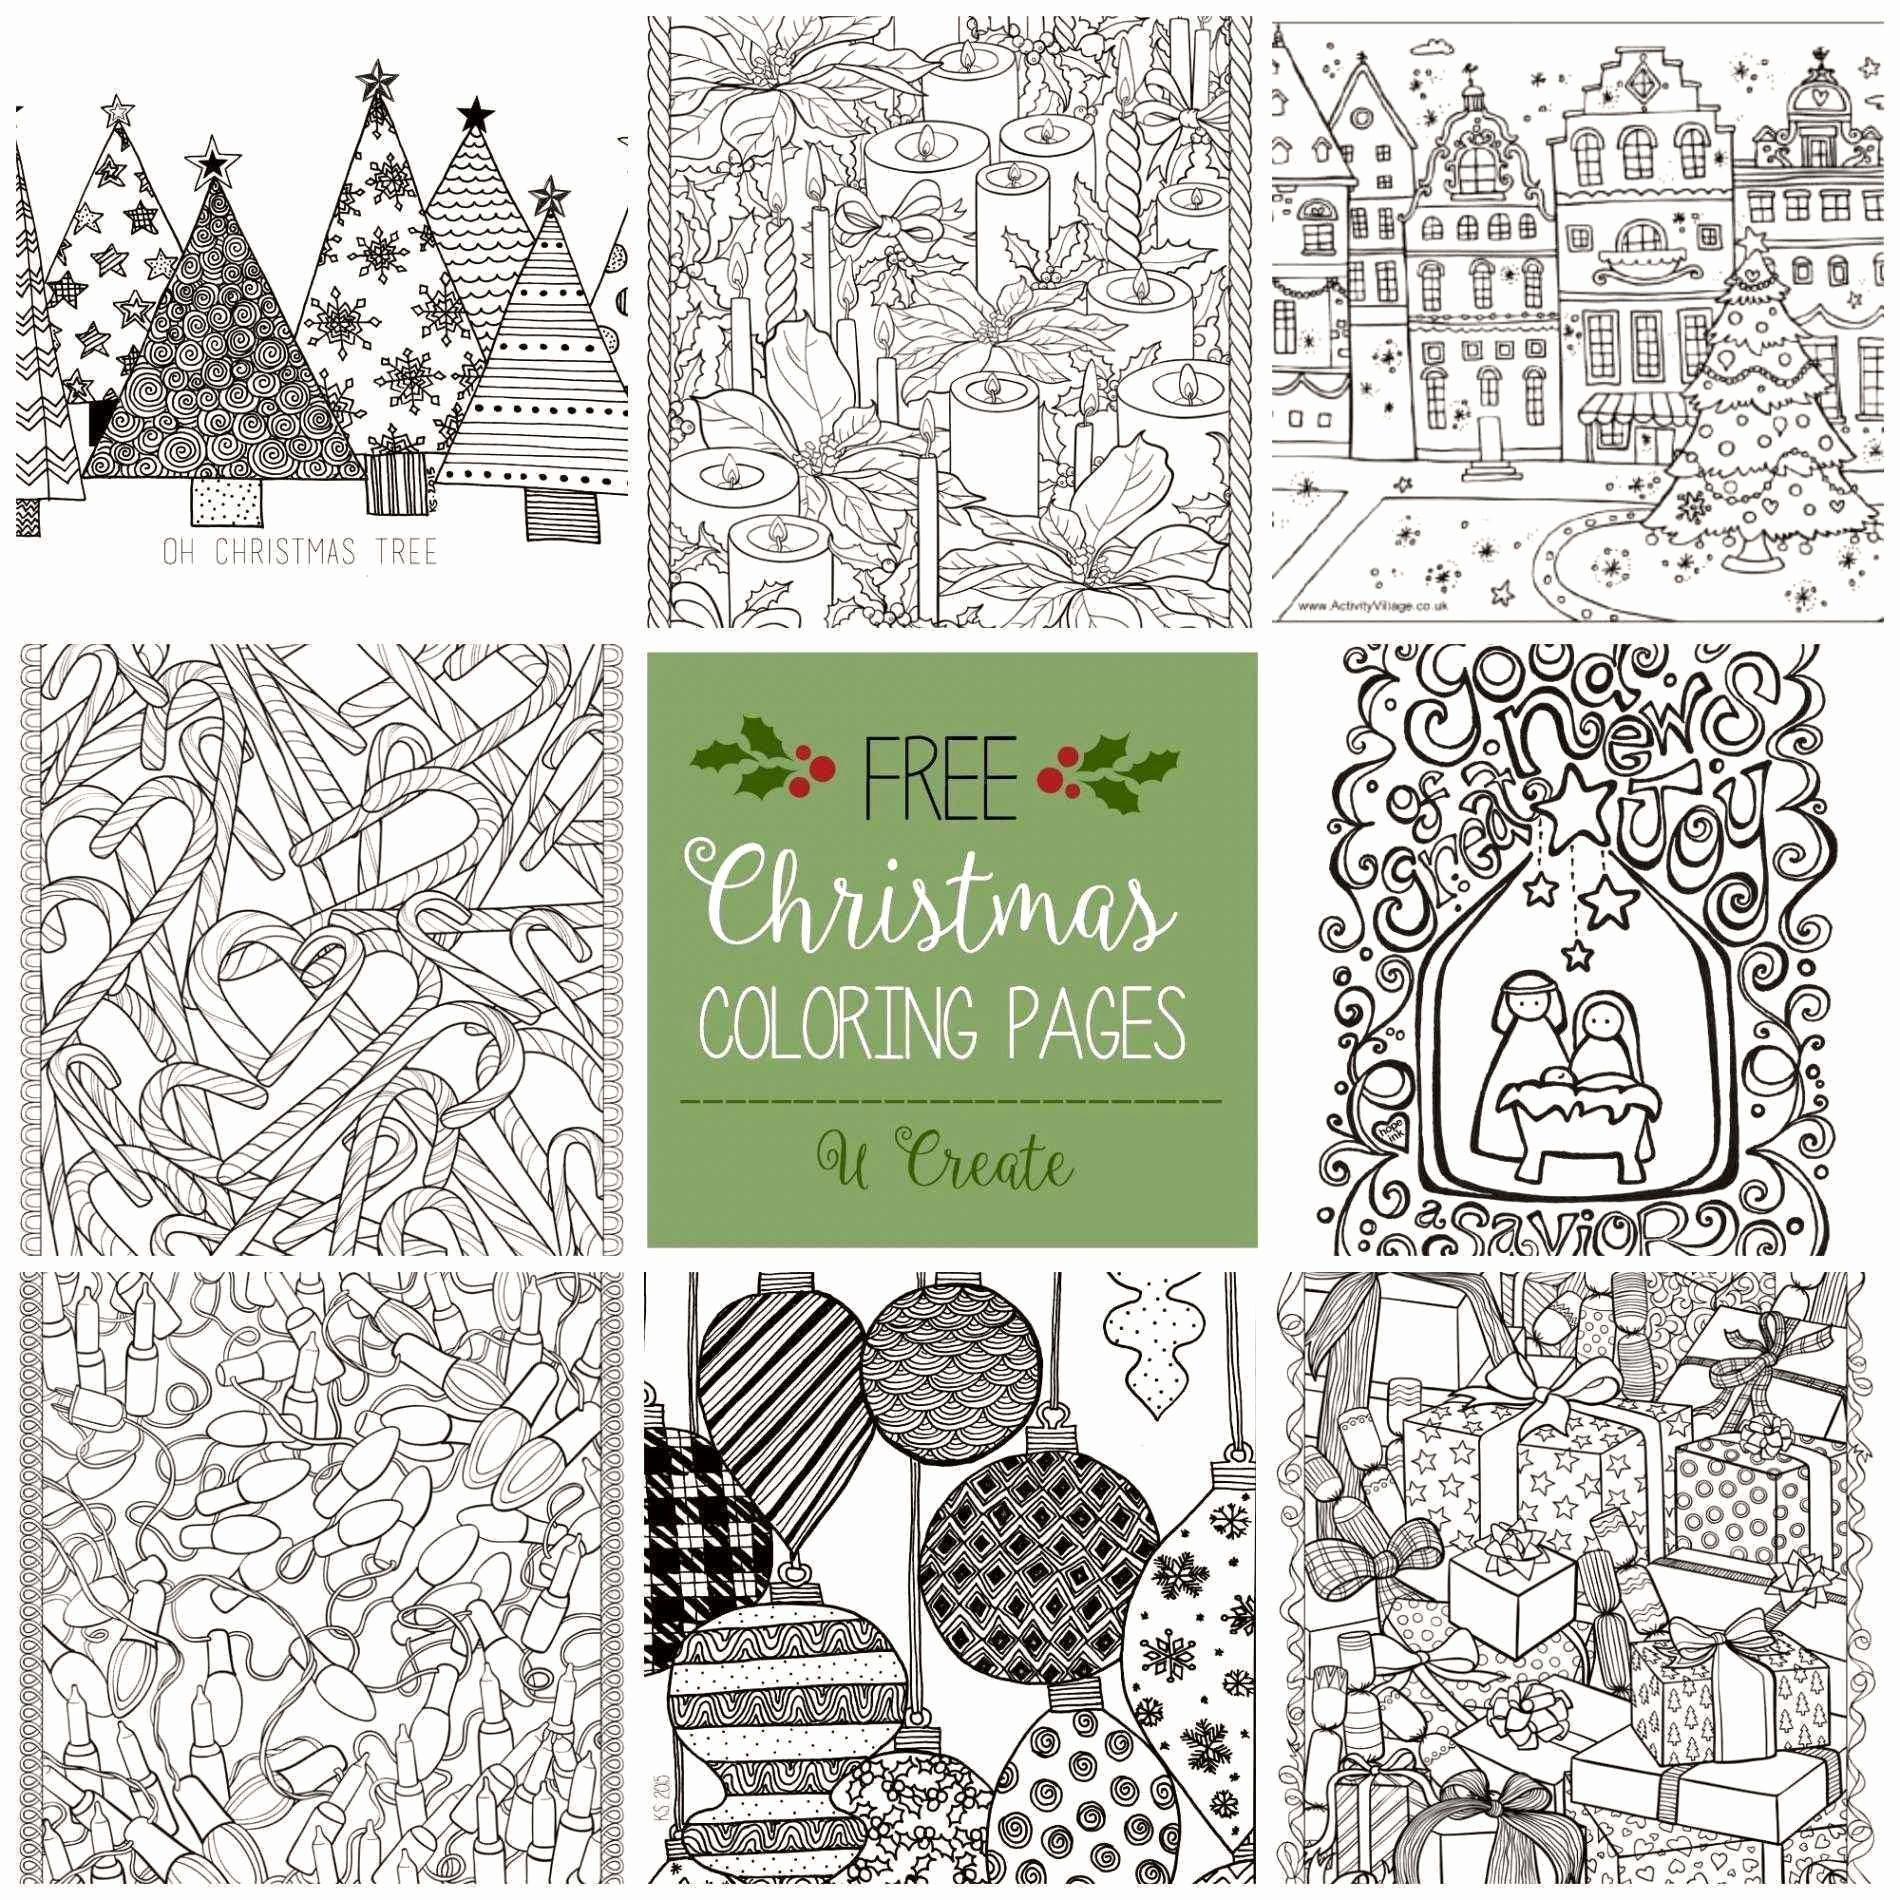 Christmas Coloring Page Websites Printable Christmas Coloring Pages Christmas Tree Coloring Page Christmas Coloring Books